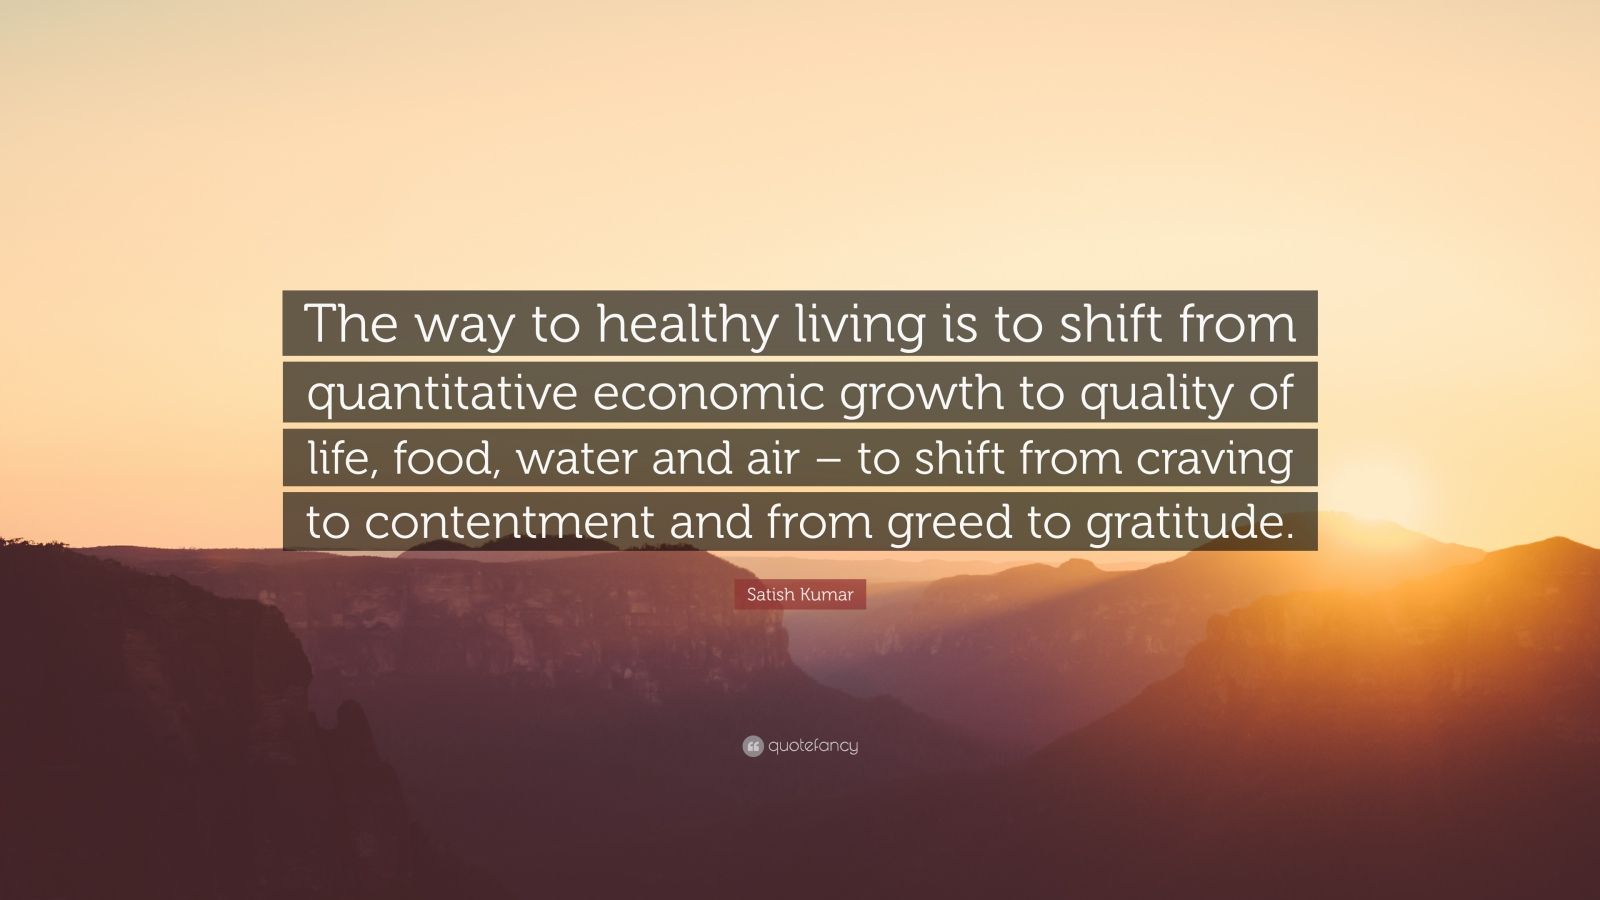 """Satish Kumar Quote: """"The way to healthy living is to shift from quantitative economic growth to quality of life, food, water and air – to shift from craving to contentment and from greed to gratitude."""""""